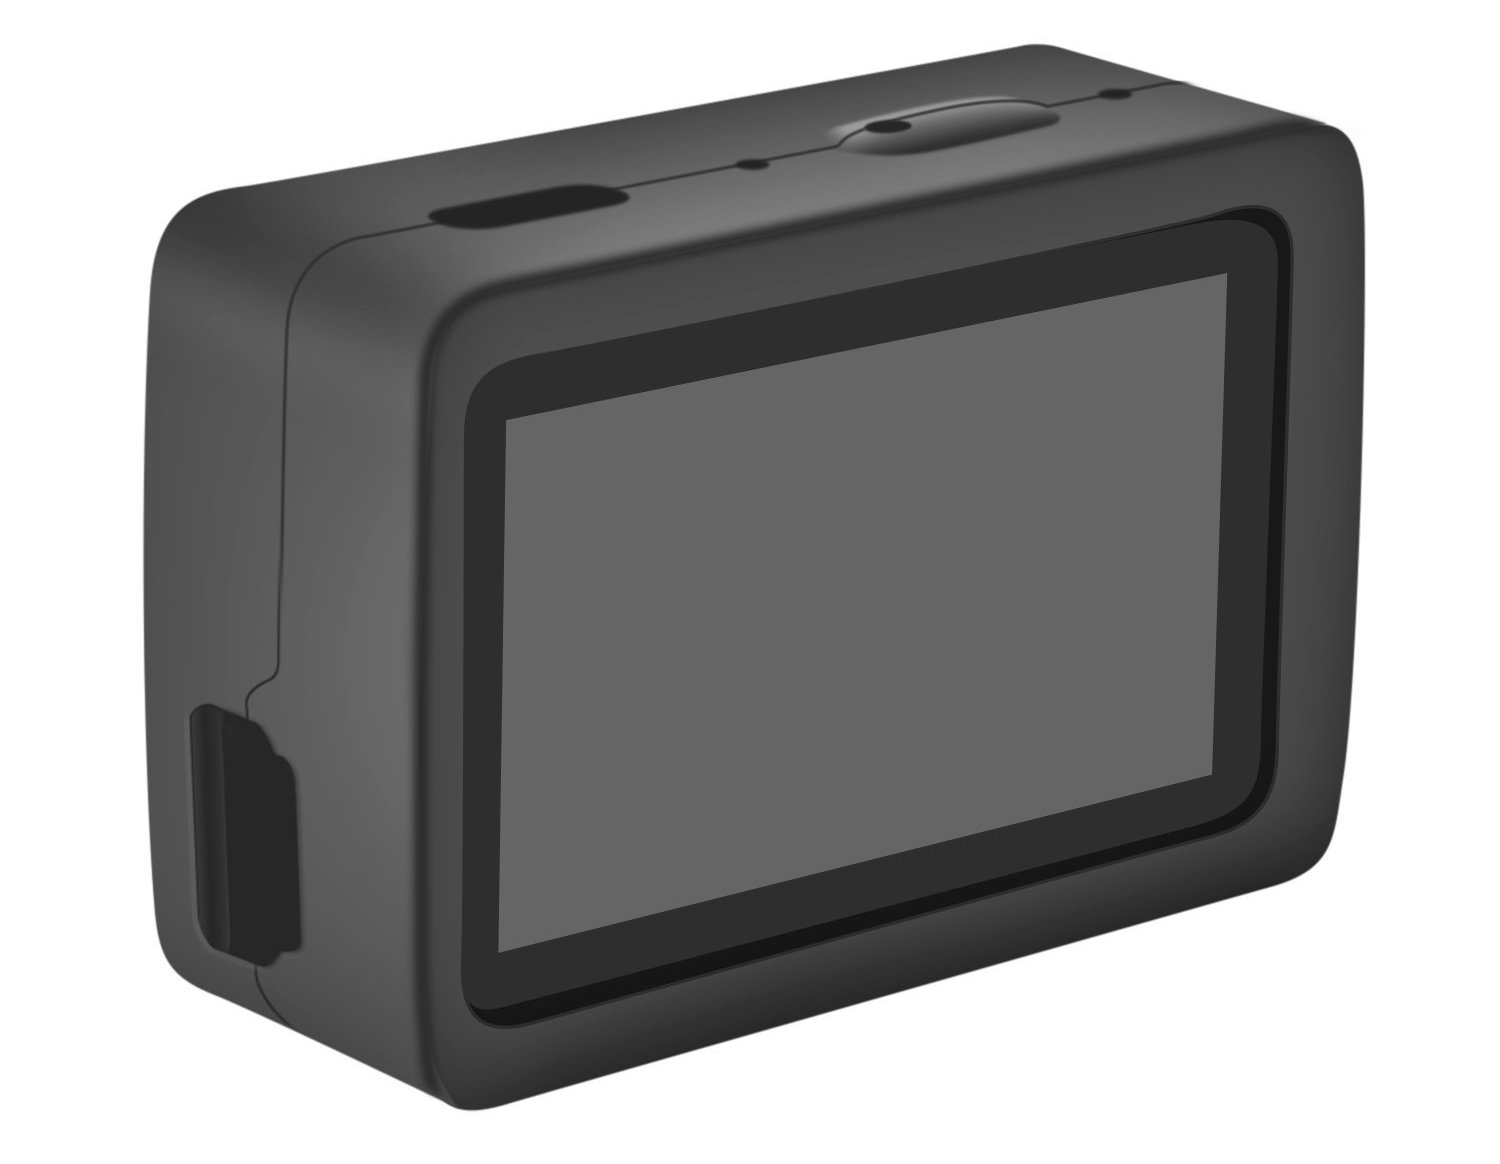 Silicone-protective-case-for-Yi-4K-Black-BMGP-261